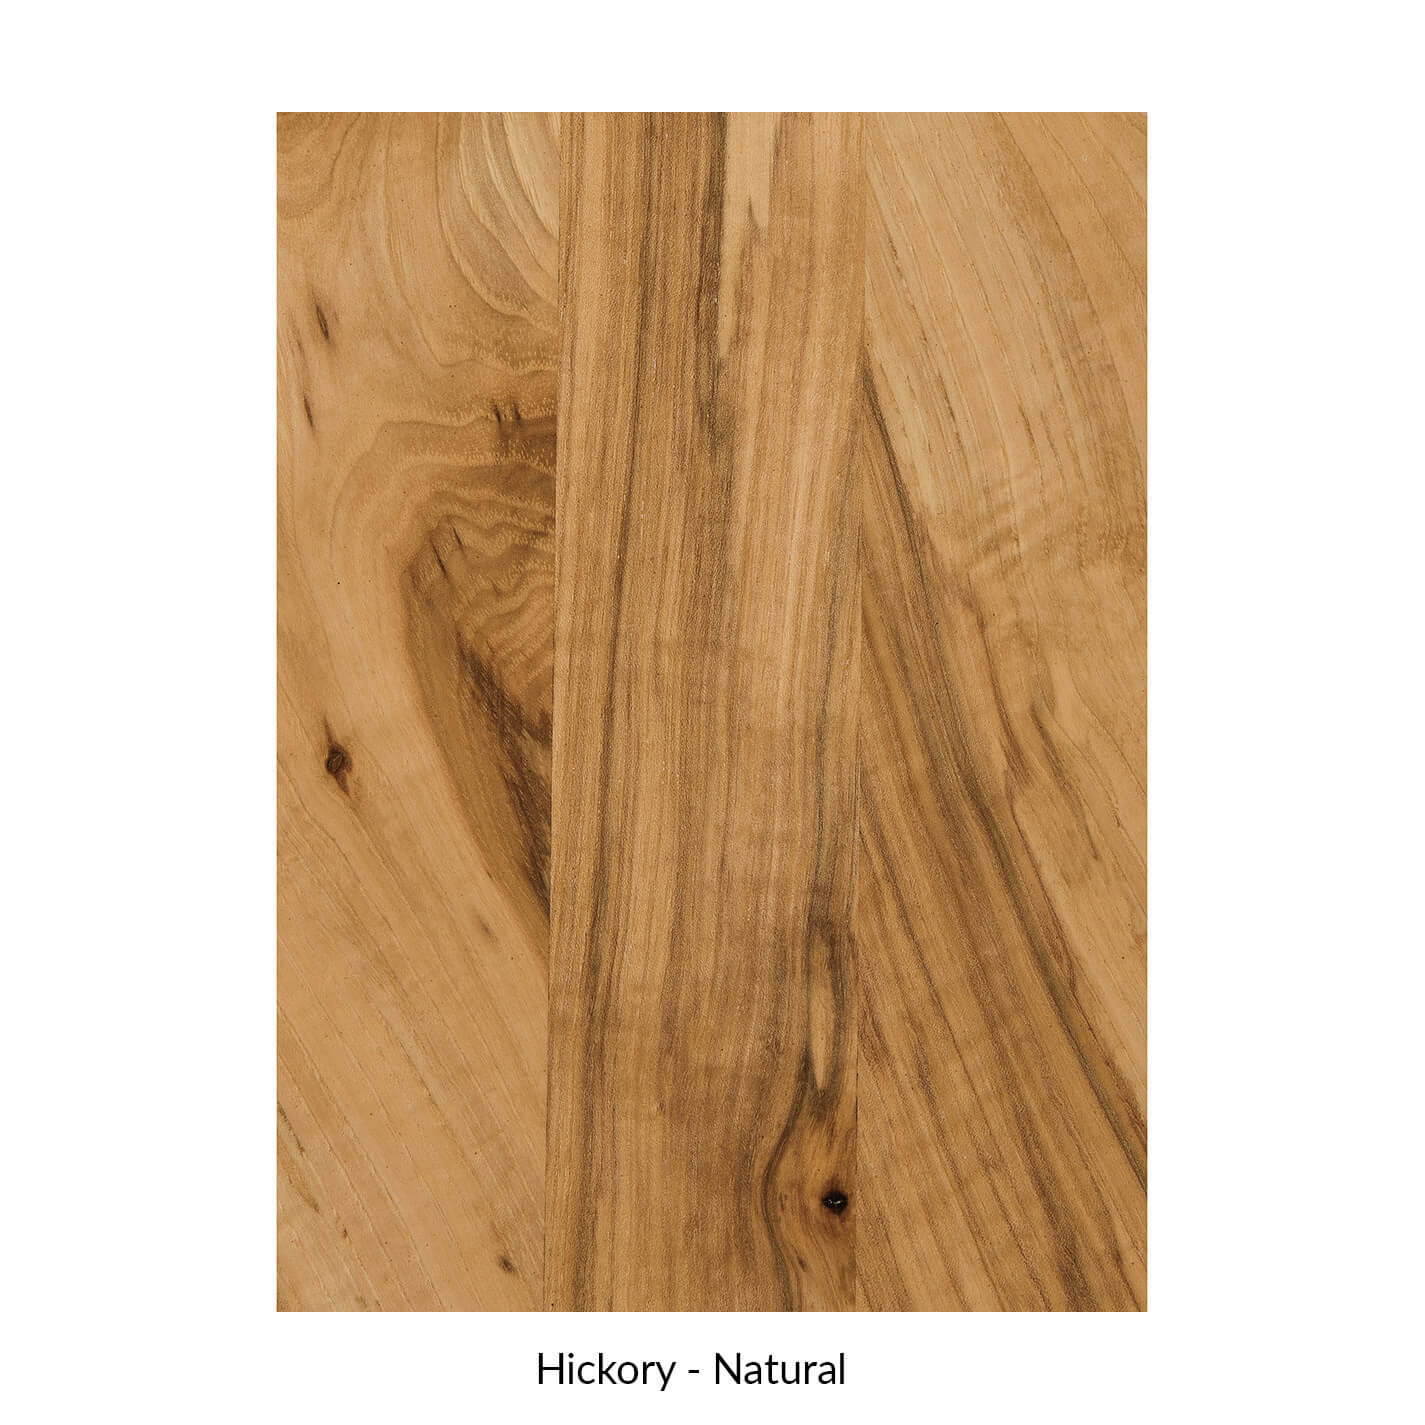 spectrum-hickory-natural.jpg